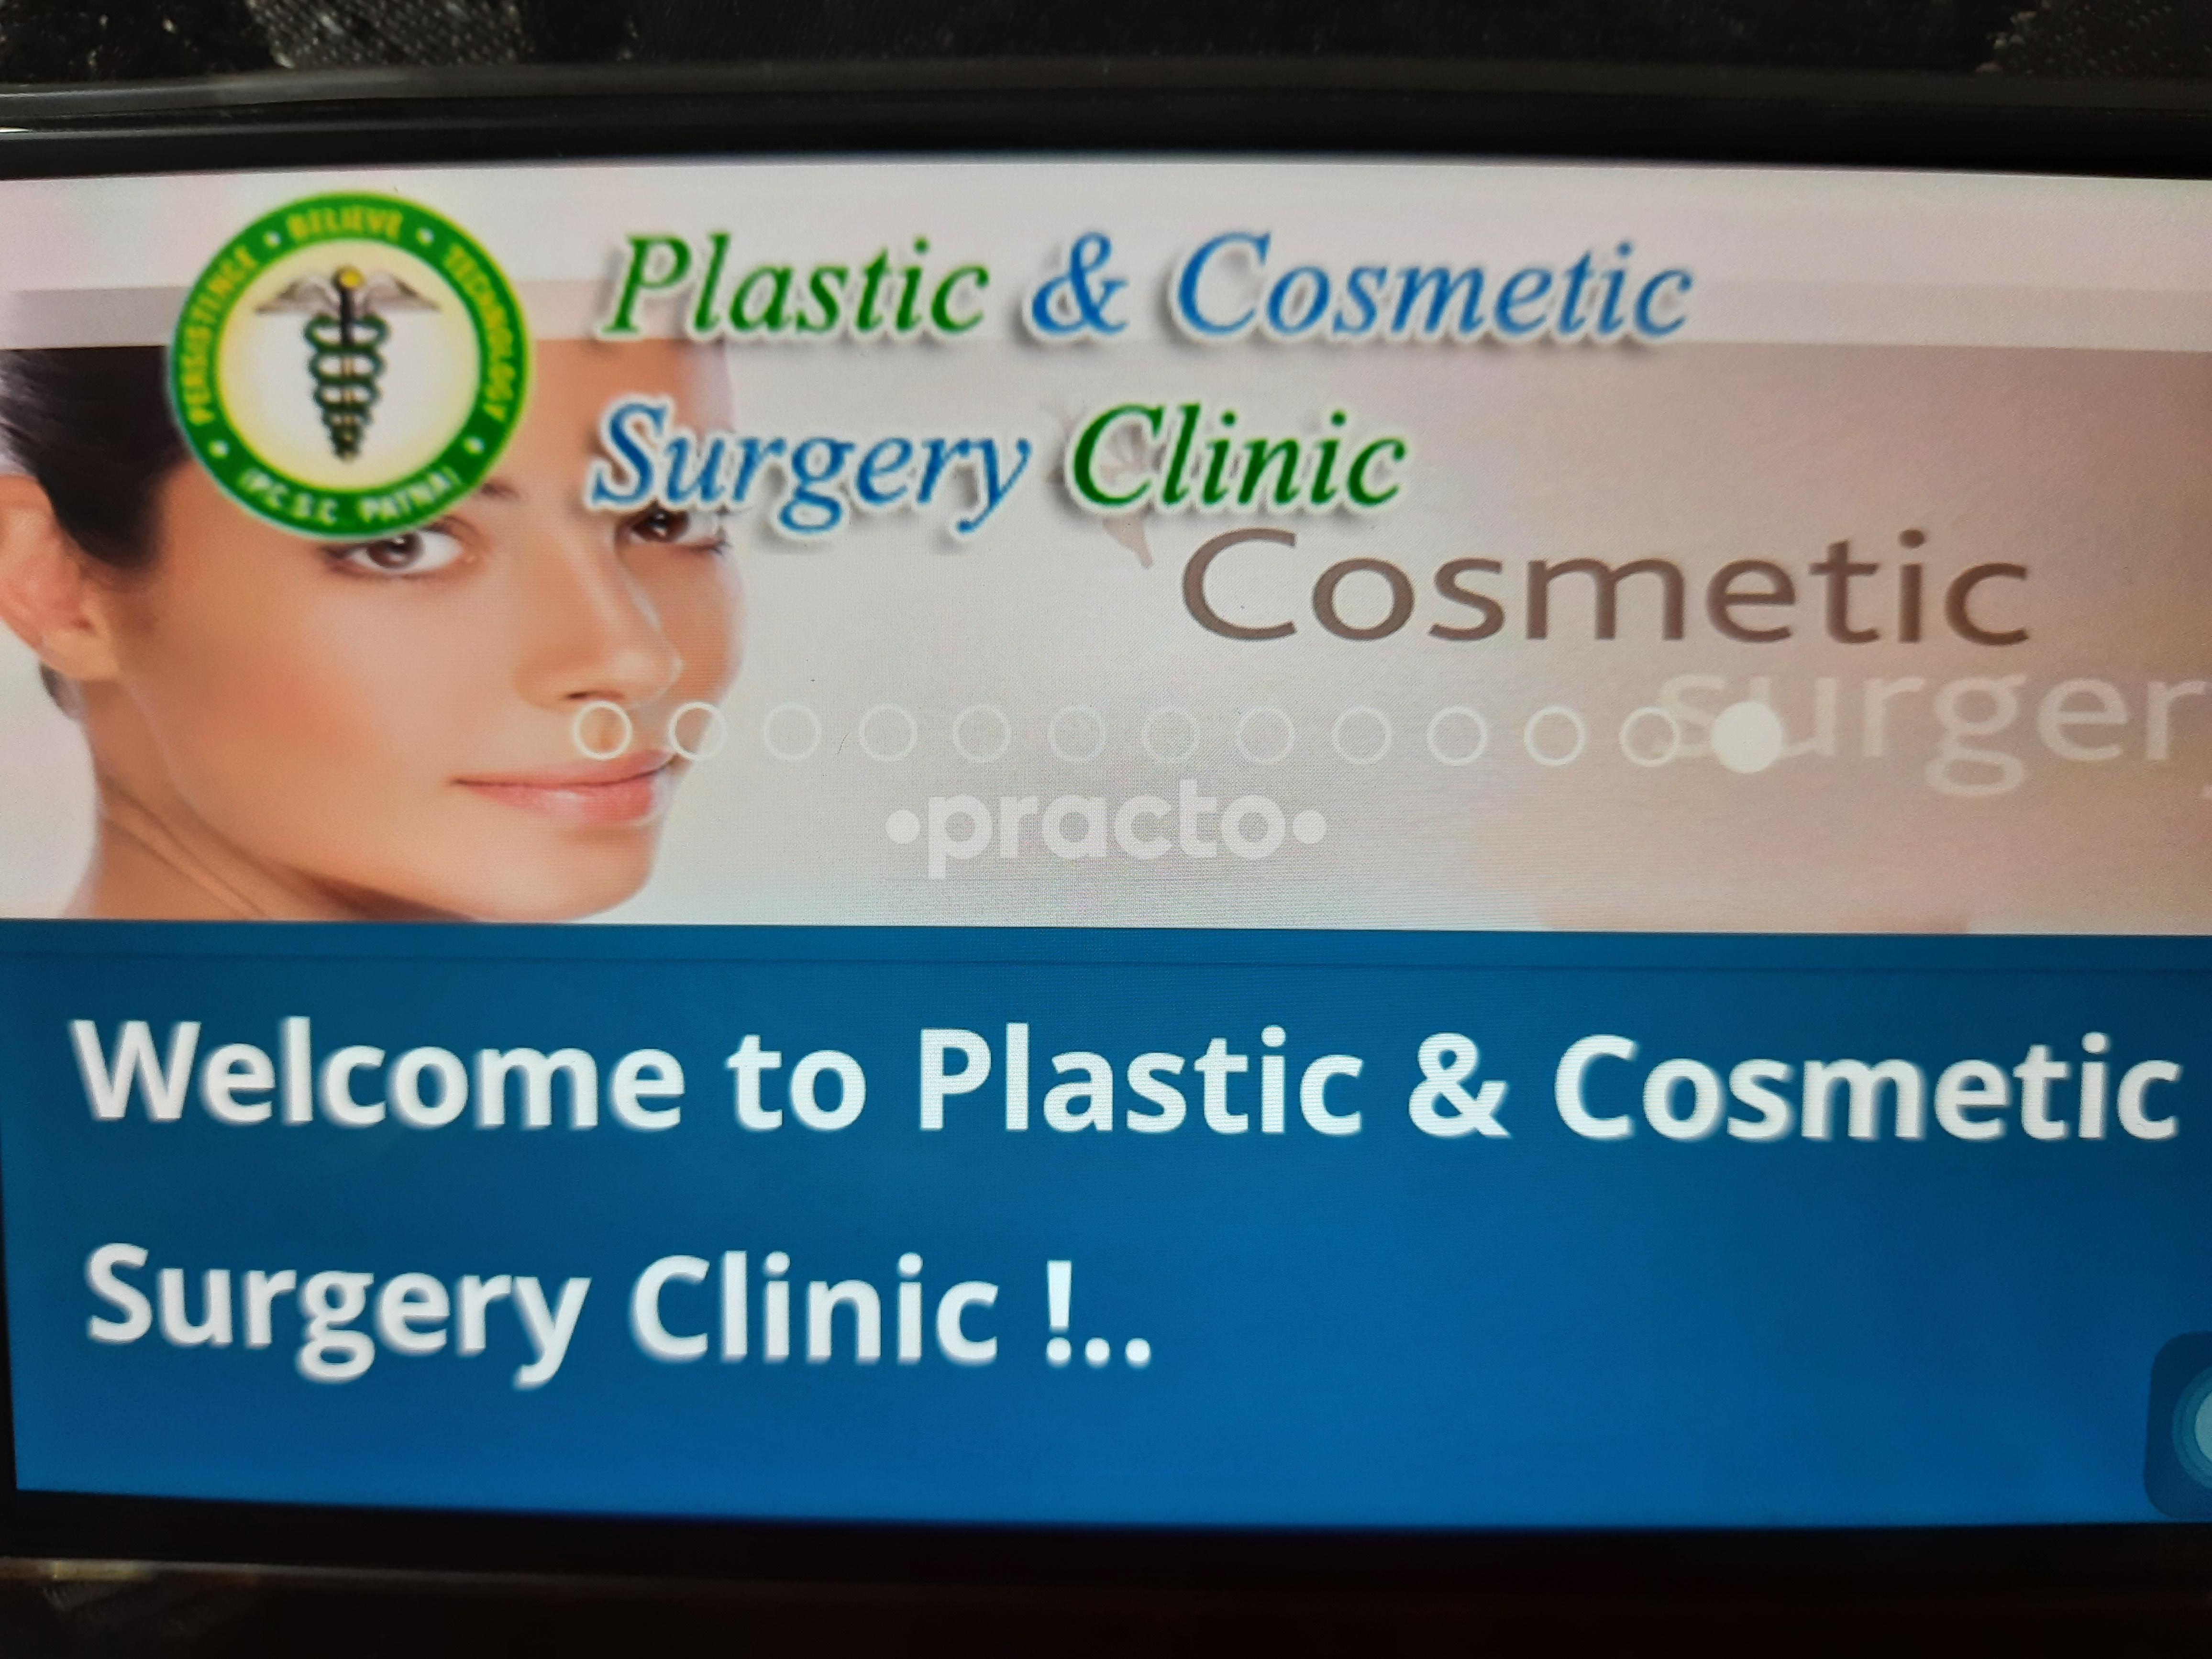 Plastic and Cosmetic Surgery Clinic